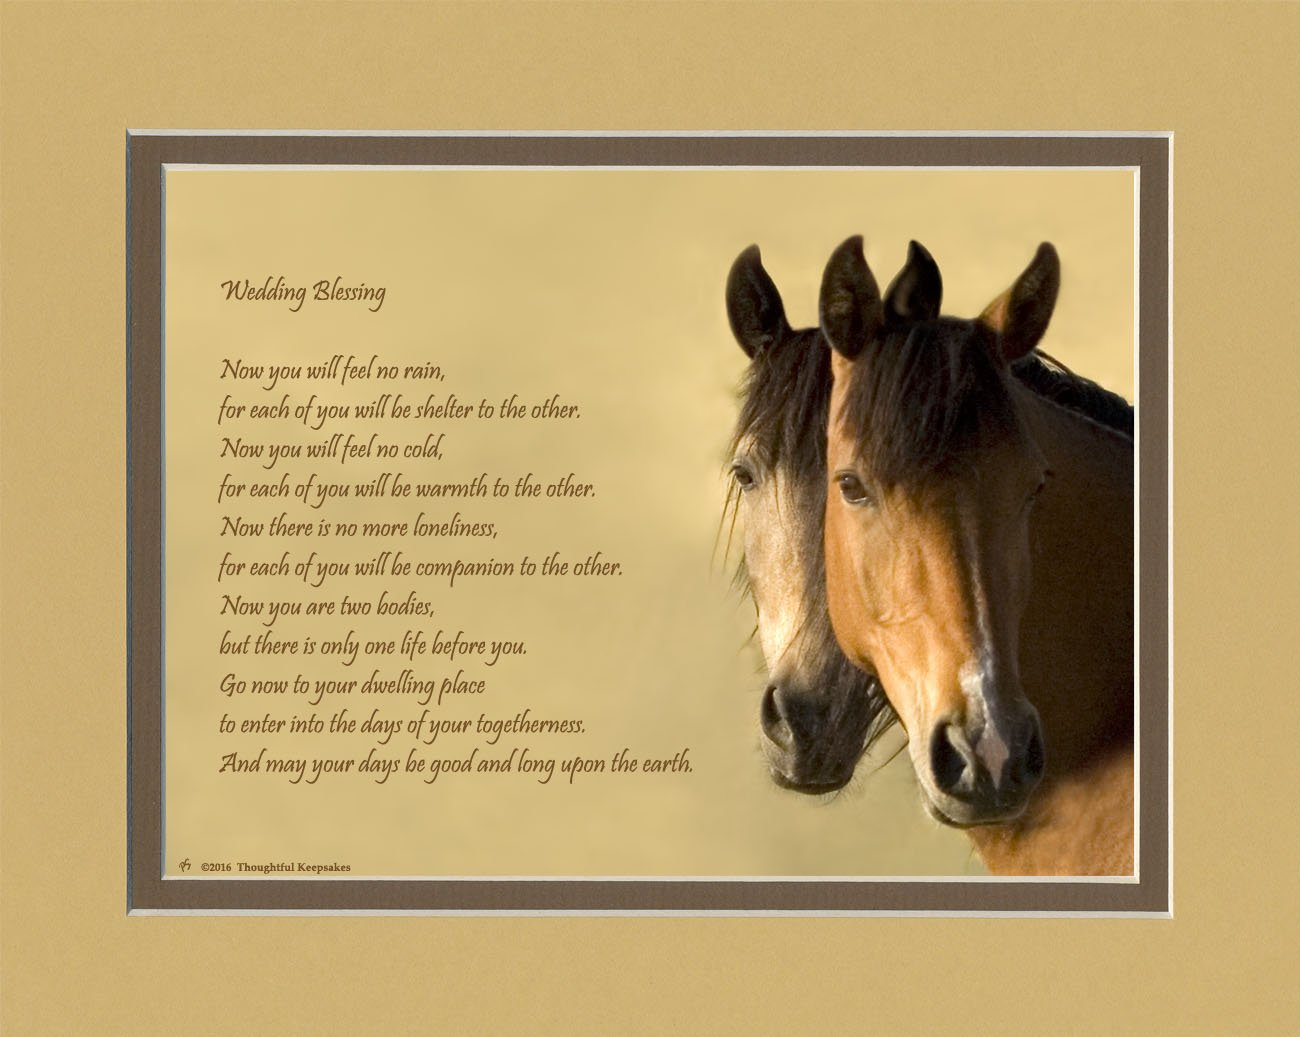 Wedding Gift for the Couple. Horses Photo with ''Now You Will Feel No Rain'' Wedding Blessing Poem, 8x10 Double Matted. Special Gift for Bride and Groom.